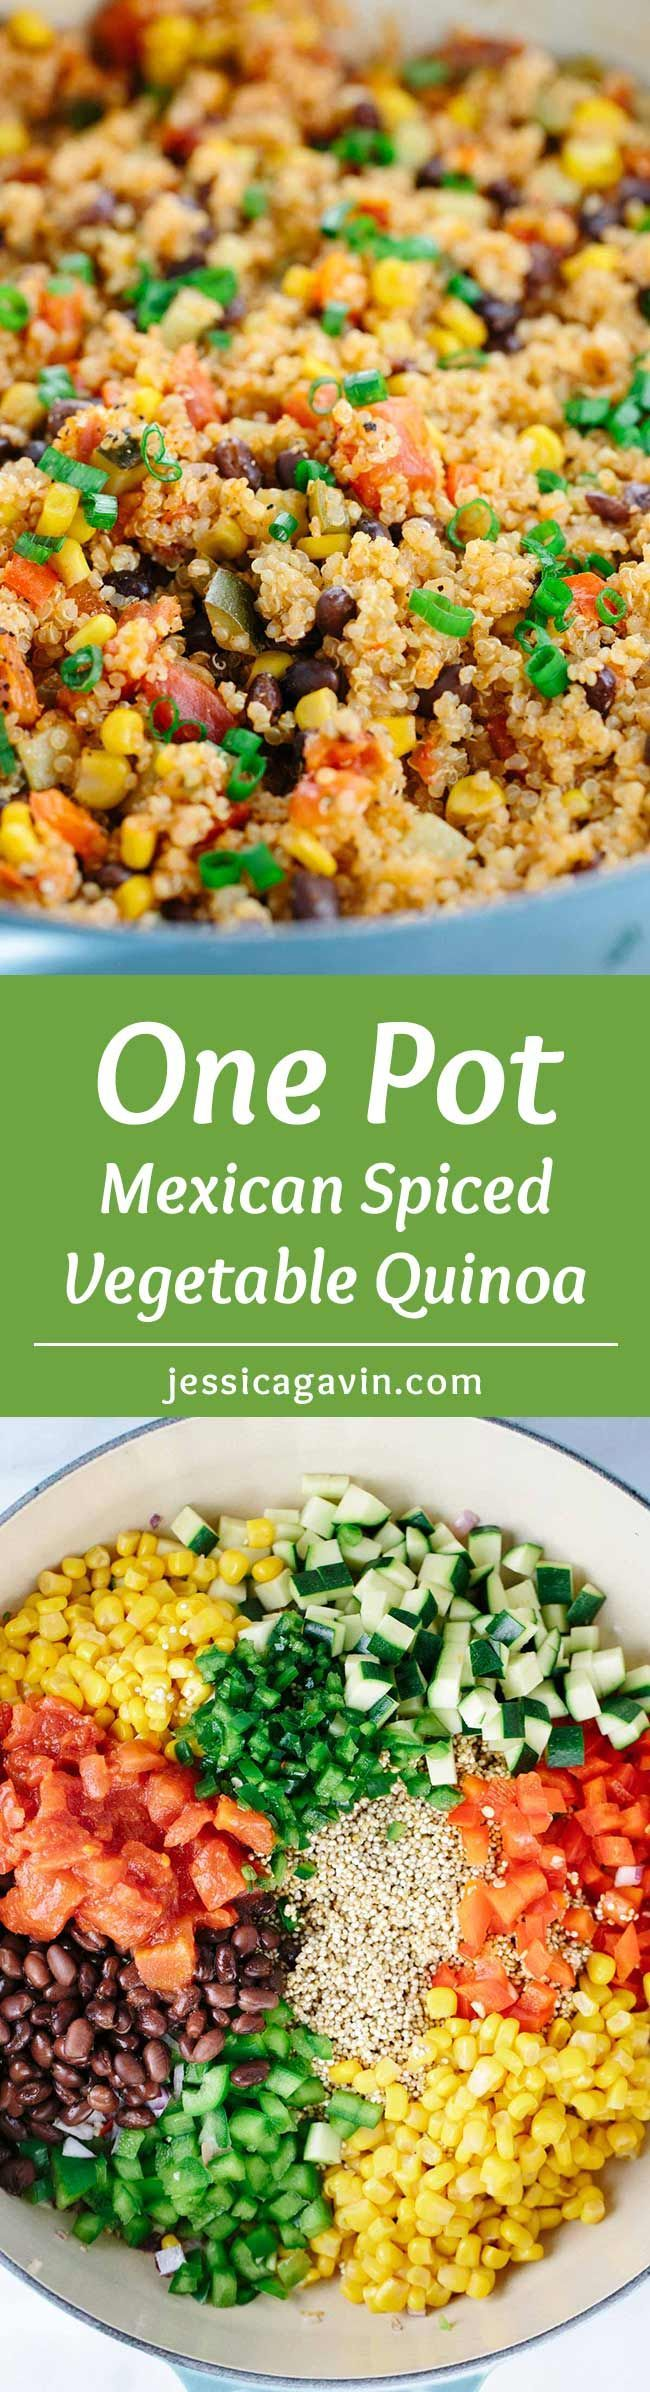 One Pot Mexican Spiced Vegetable Quinoa - This recipe is loaded with bold flavors and healthy ingredients like protein, fiber, and vegetables in each delicious spoonful.   jessicagavin.com